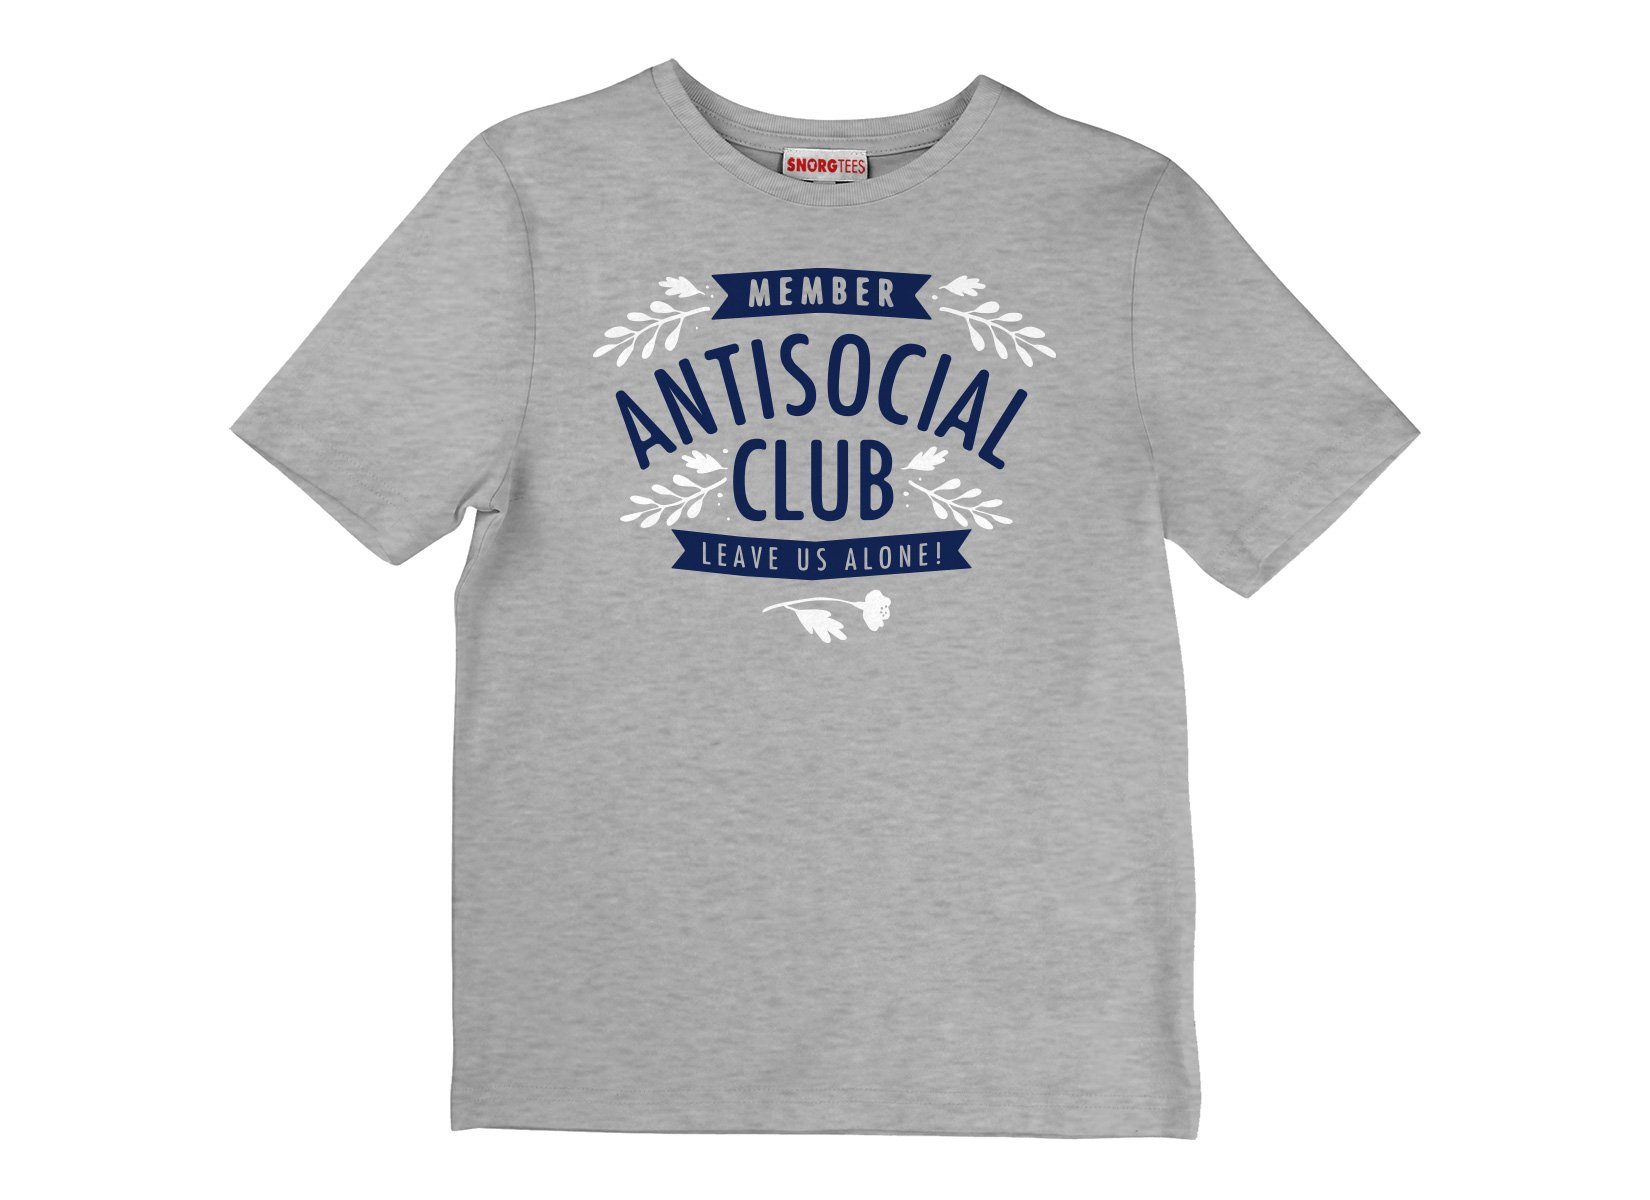 Antisocial Club on Kids T-Shirt